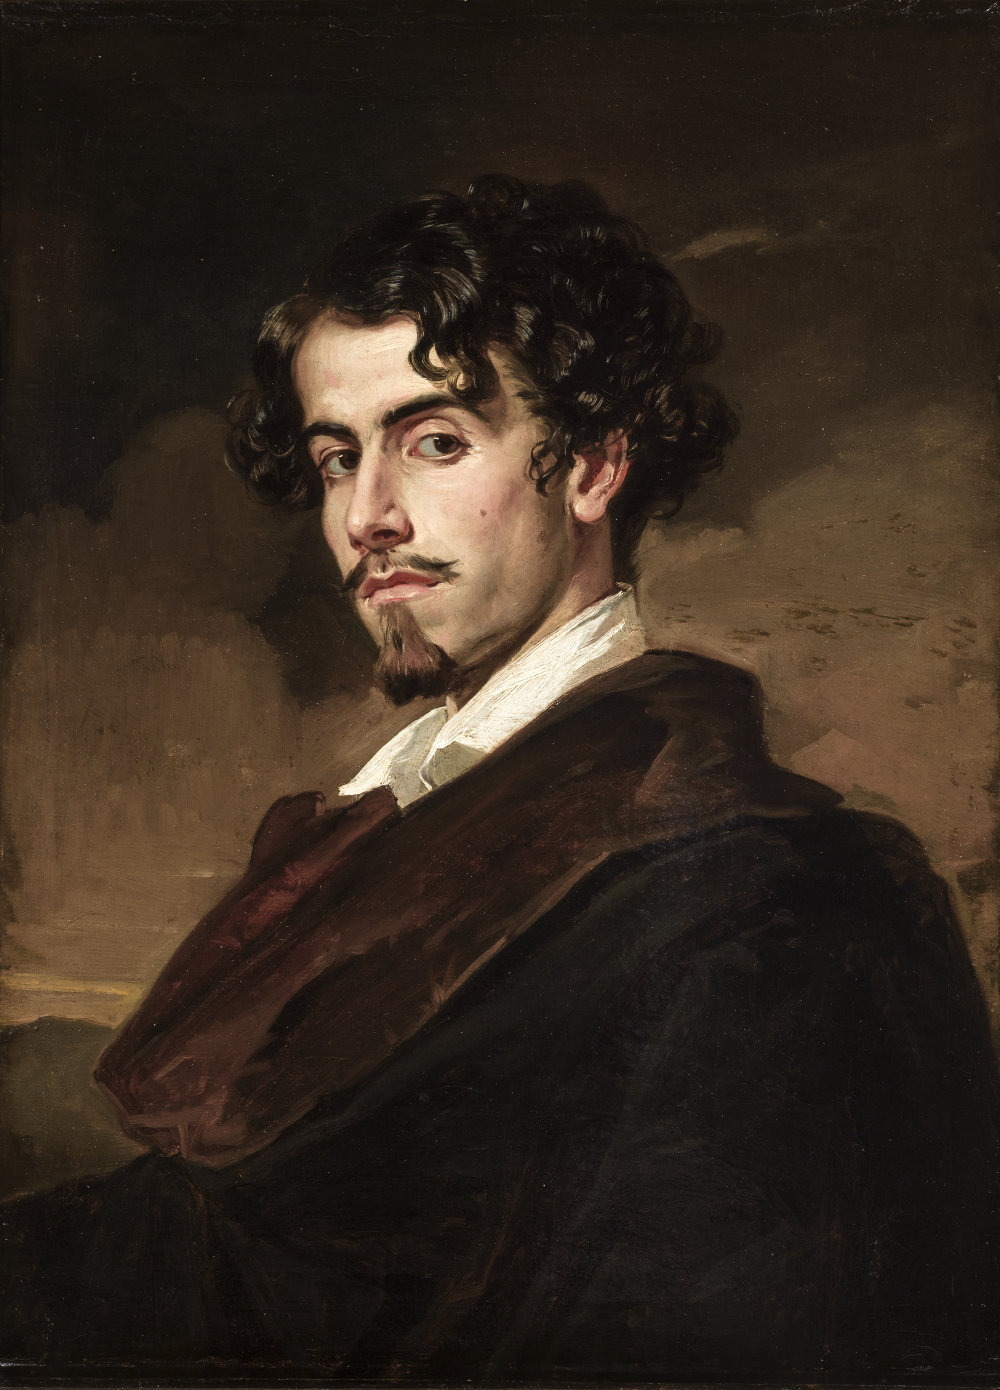 Portrait_of_Gustavo_Adolfo_Bécquer,_by_his_brother_Valeriano_(1862).jpg